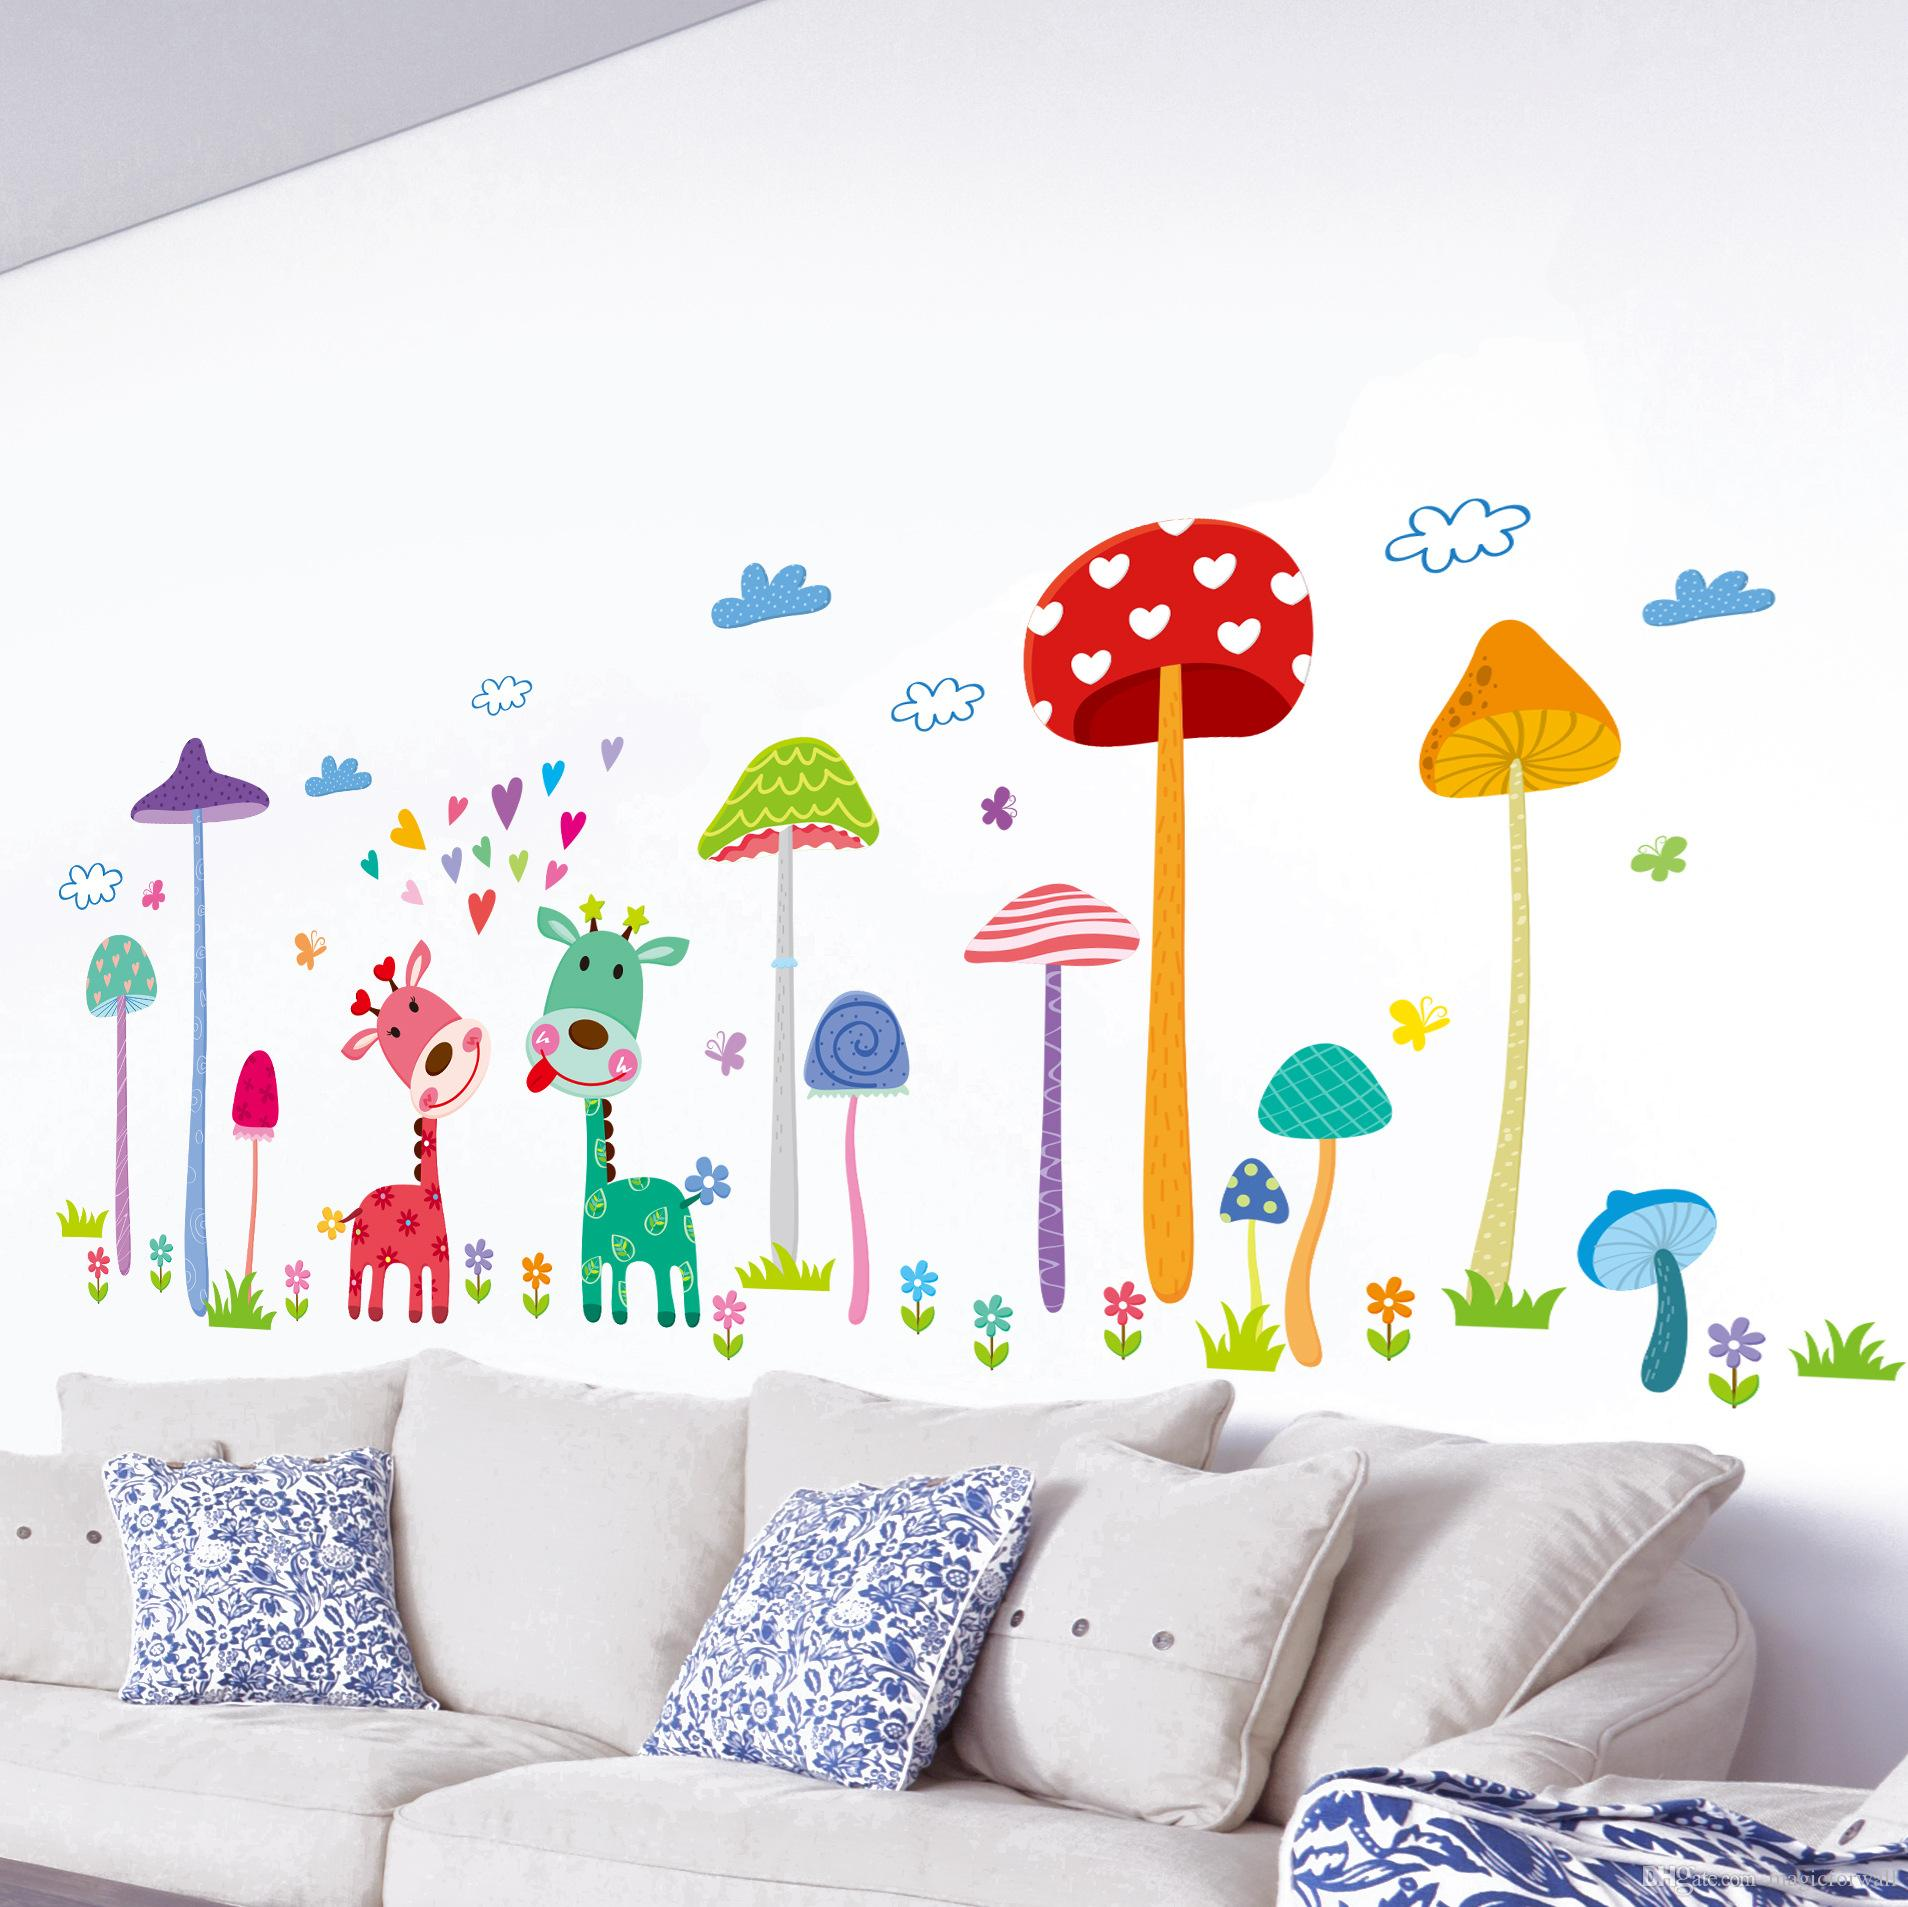 Perfect Forest Mushroom Deer Animals Home Wall Art Mural Decor Kids Babies Room  Nursery Wallpaper Decoration Decal Lovely Animals Family Art Decor Wall  Stickers ...